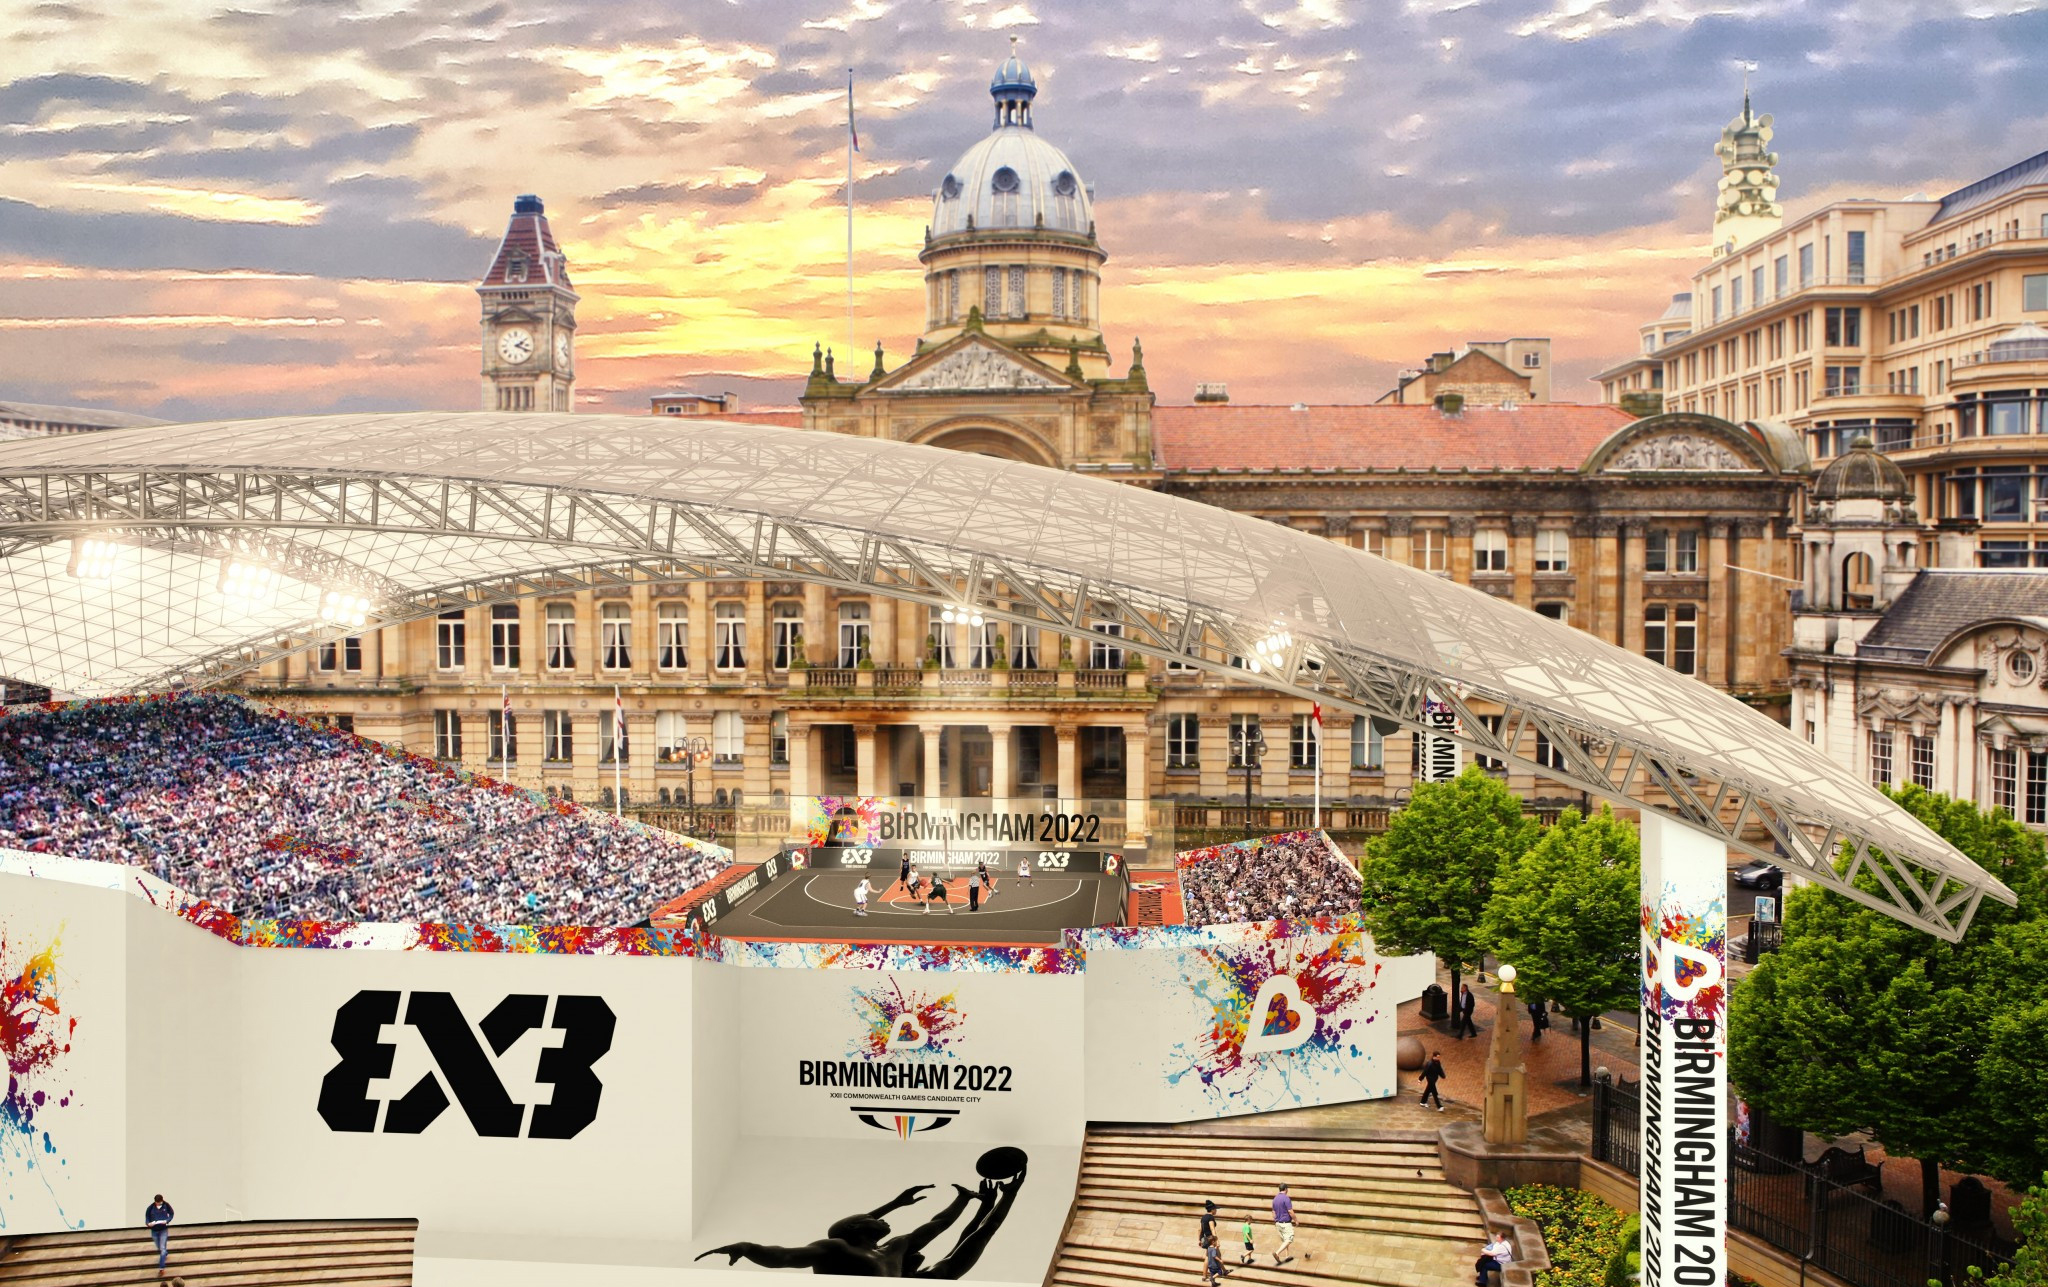 Birmingham is the only city to have submitted a bit for hosting the 2022 Commonwealth Games, by the official deadline